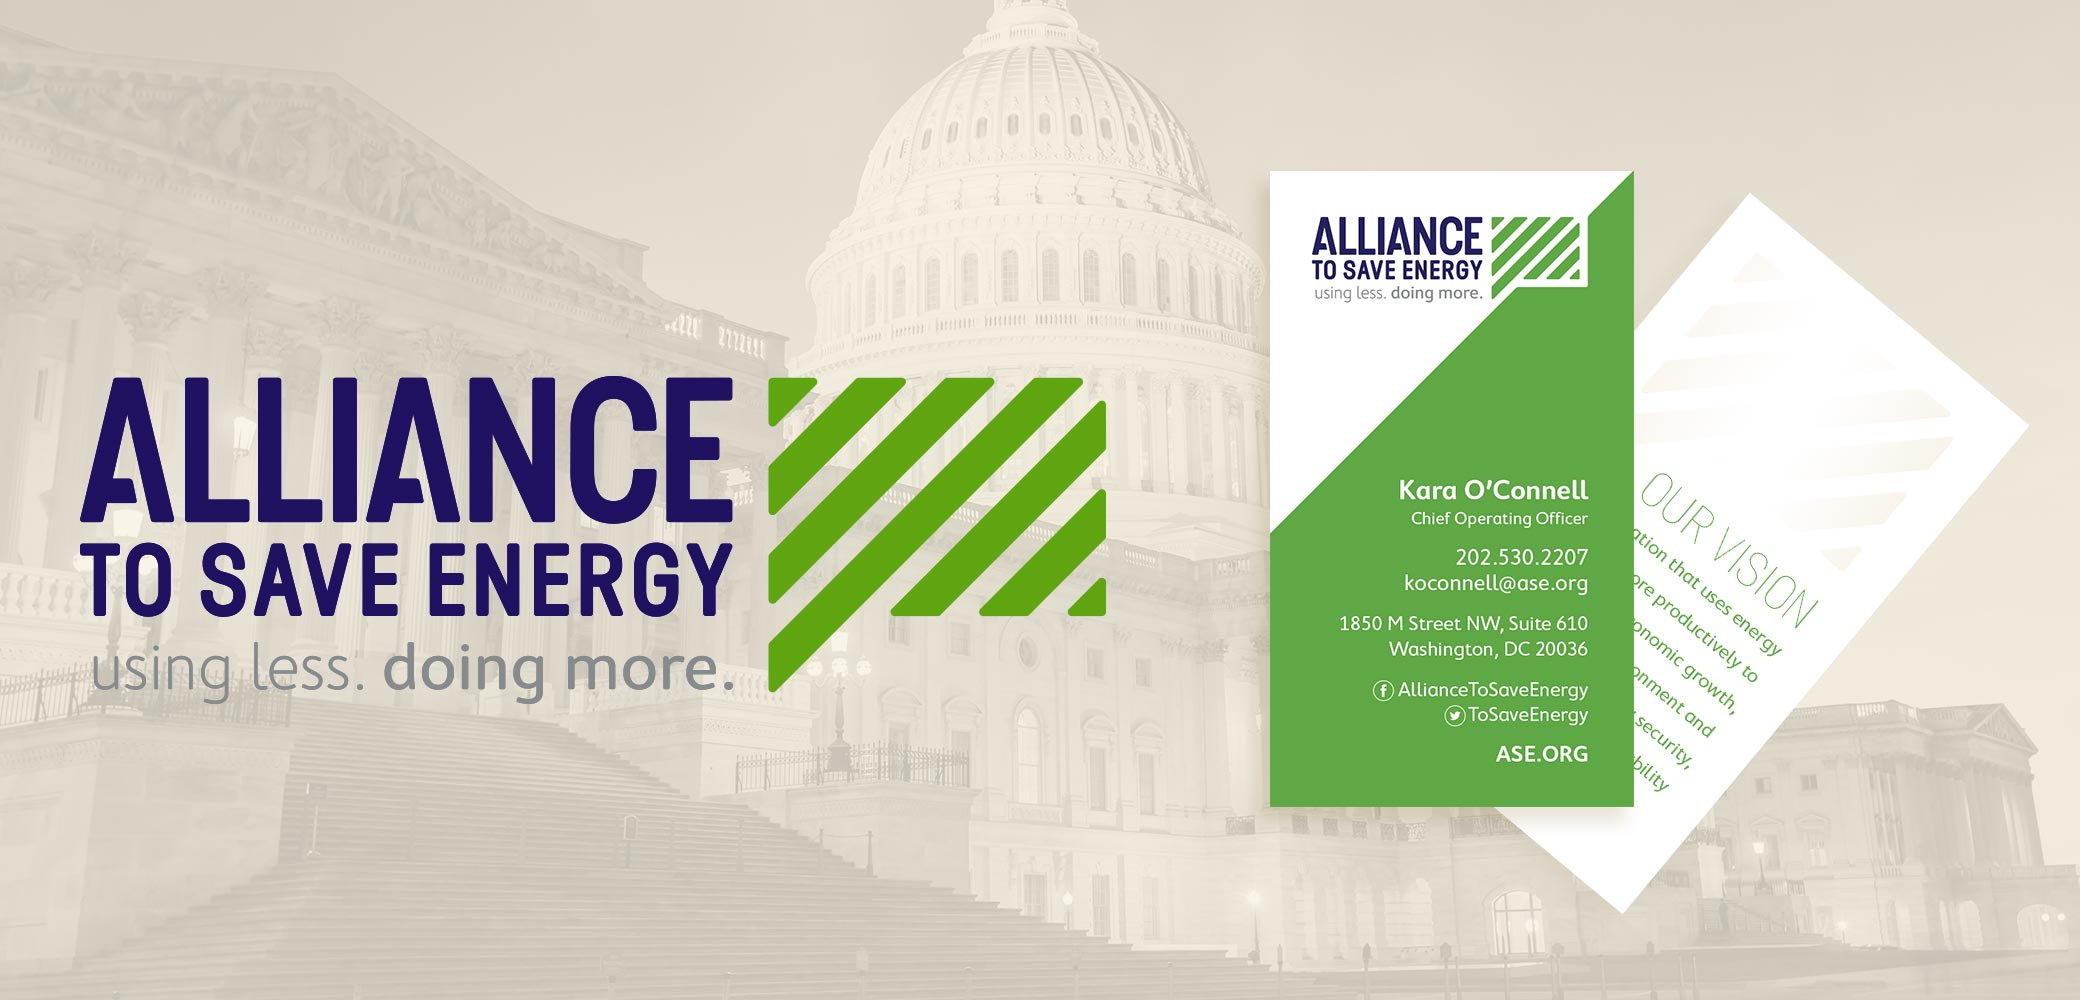 Alliance to Save Energy's logo + business card design by Red Chalk Studios